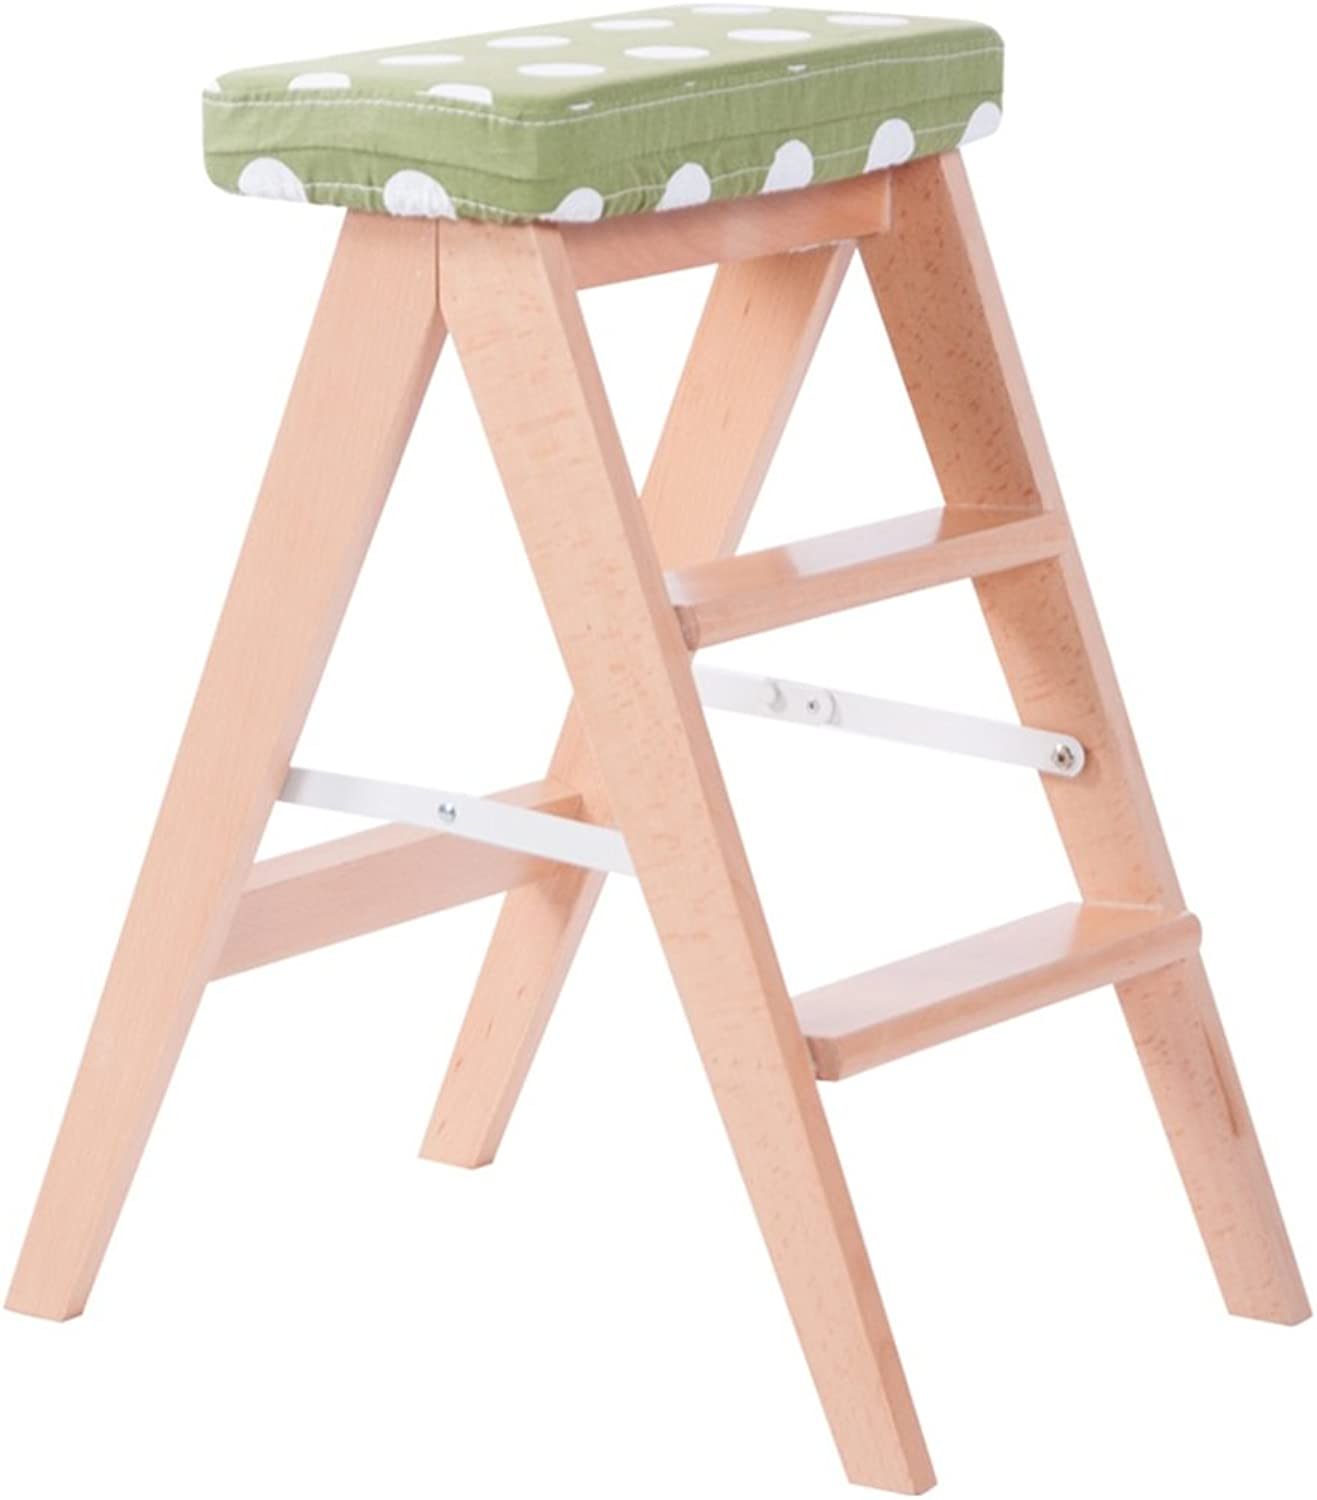 Step Stool Wood,Bed Steps Plant Stand Wood Ladder Chair Multifunctional Wooden Ladder Chair Foldable Shelving Ladder with 2 3Steps for Home Decoration and Library (color    3)